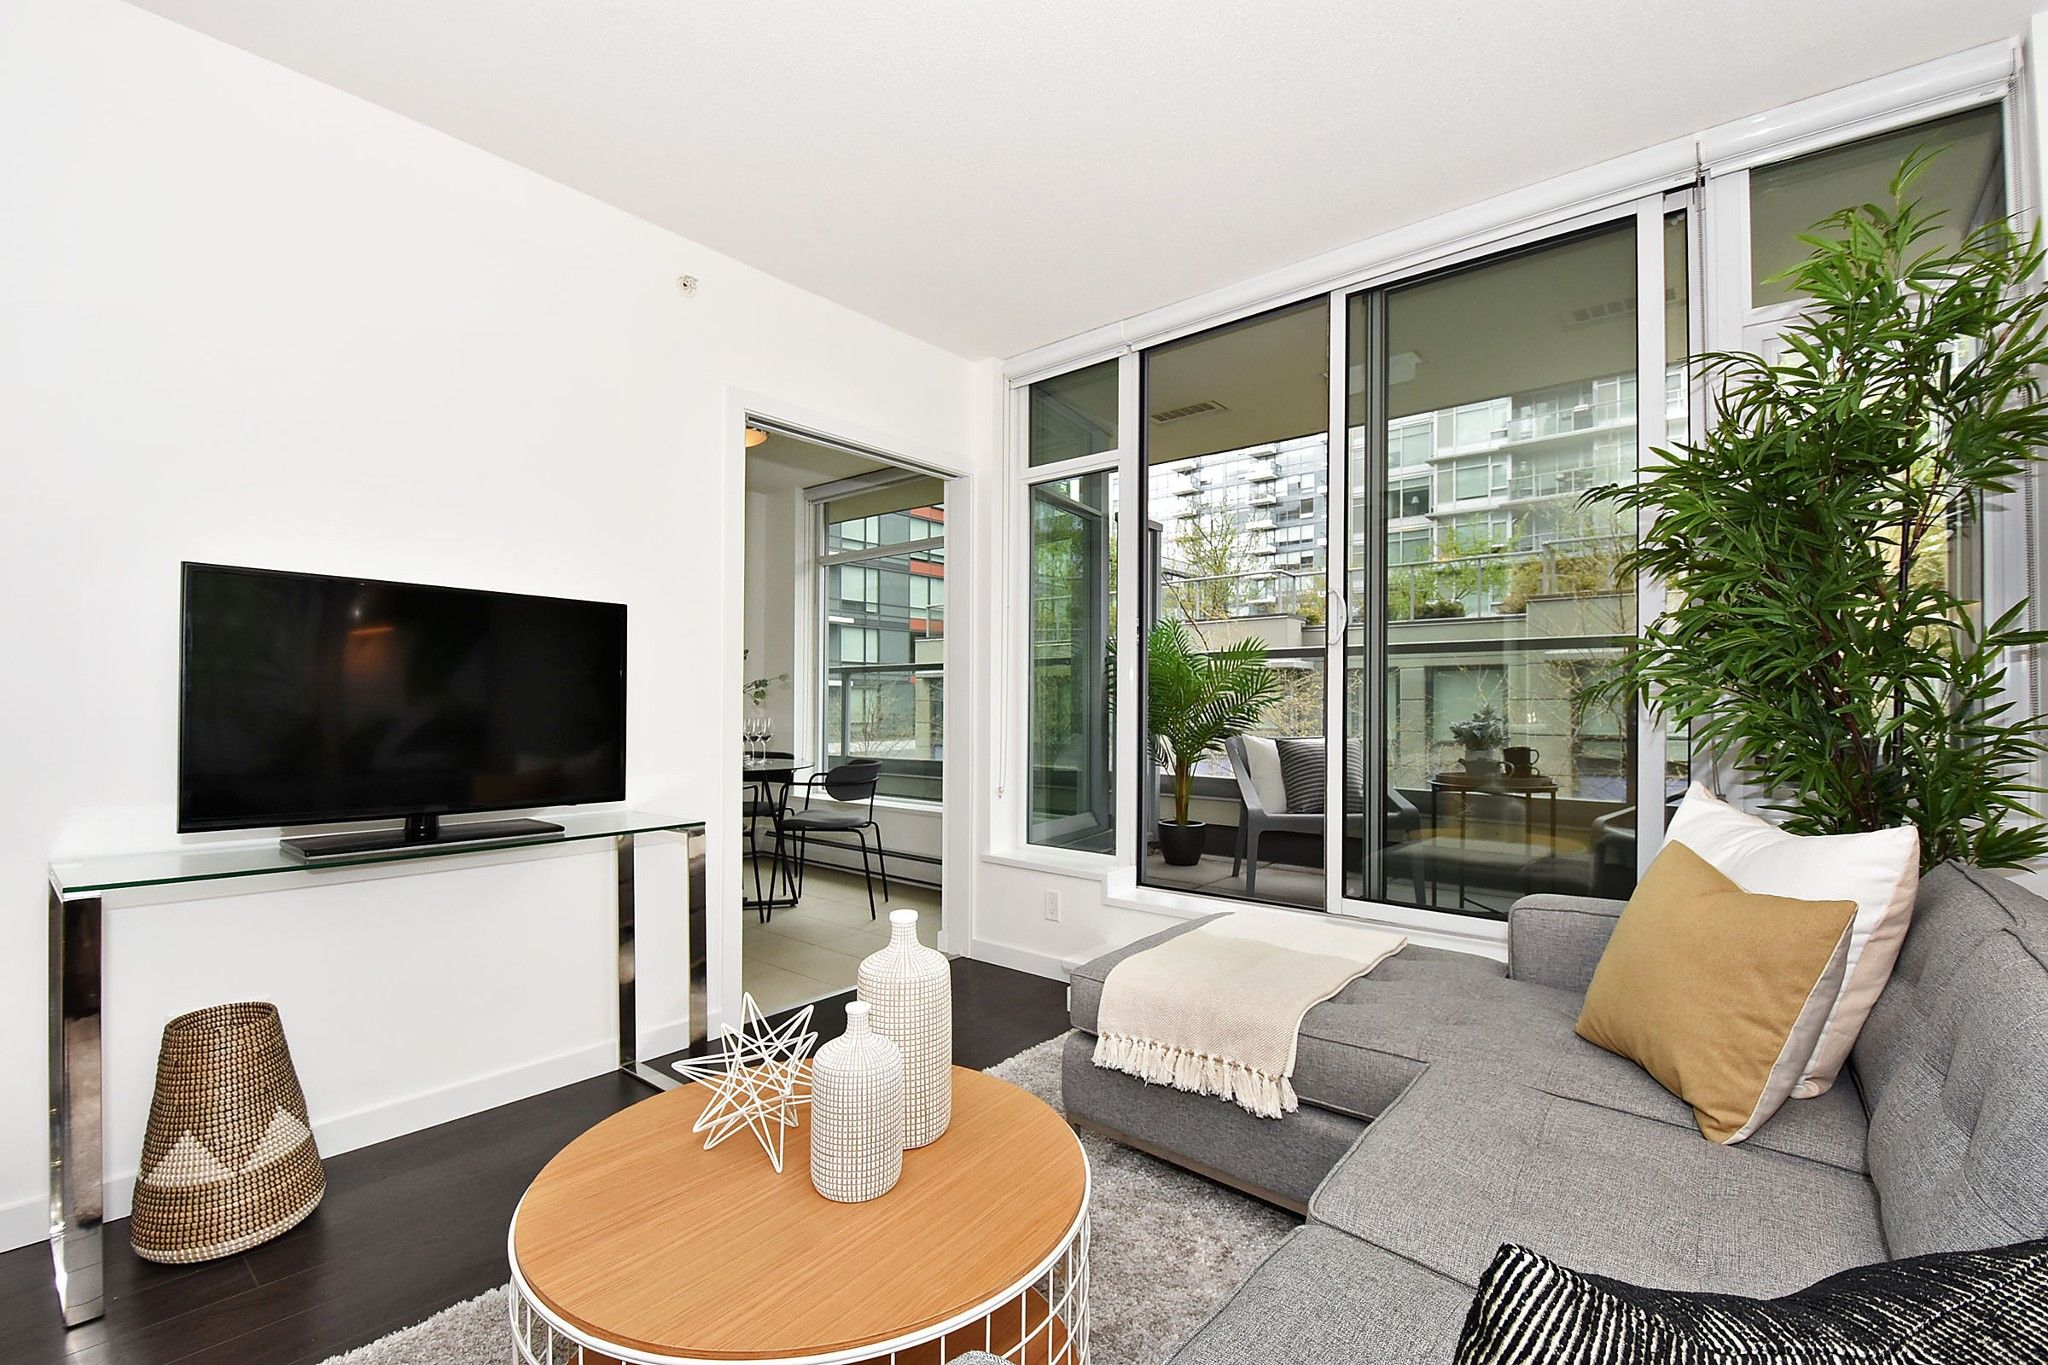 """Photo 4: Photos: 306 138 W 1ST Avenue in Vancouver: False Creek Condo for sale in """"WALL CENTRE FALSE CREEK"""" (Vancouver West)  : MLS®# R2360592"""